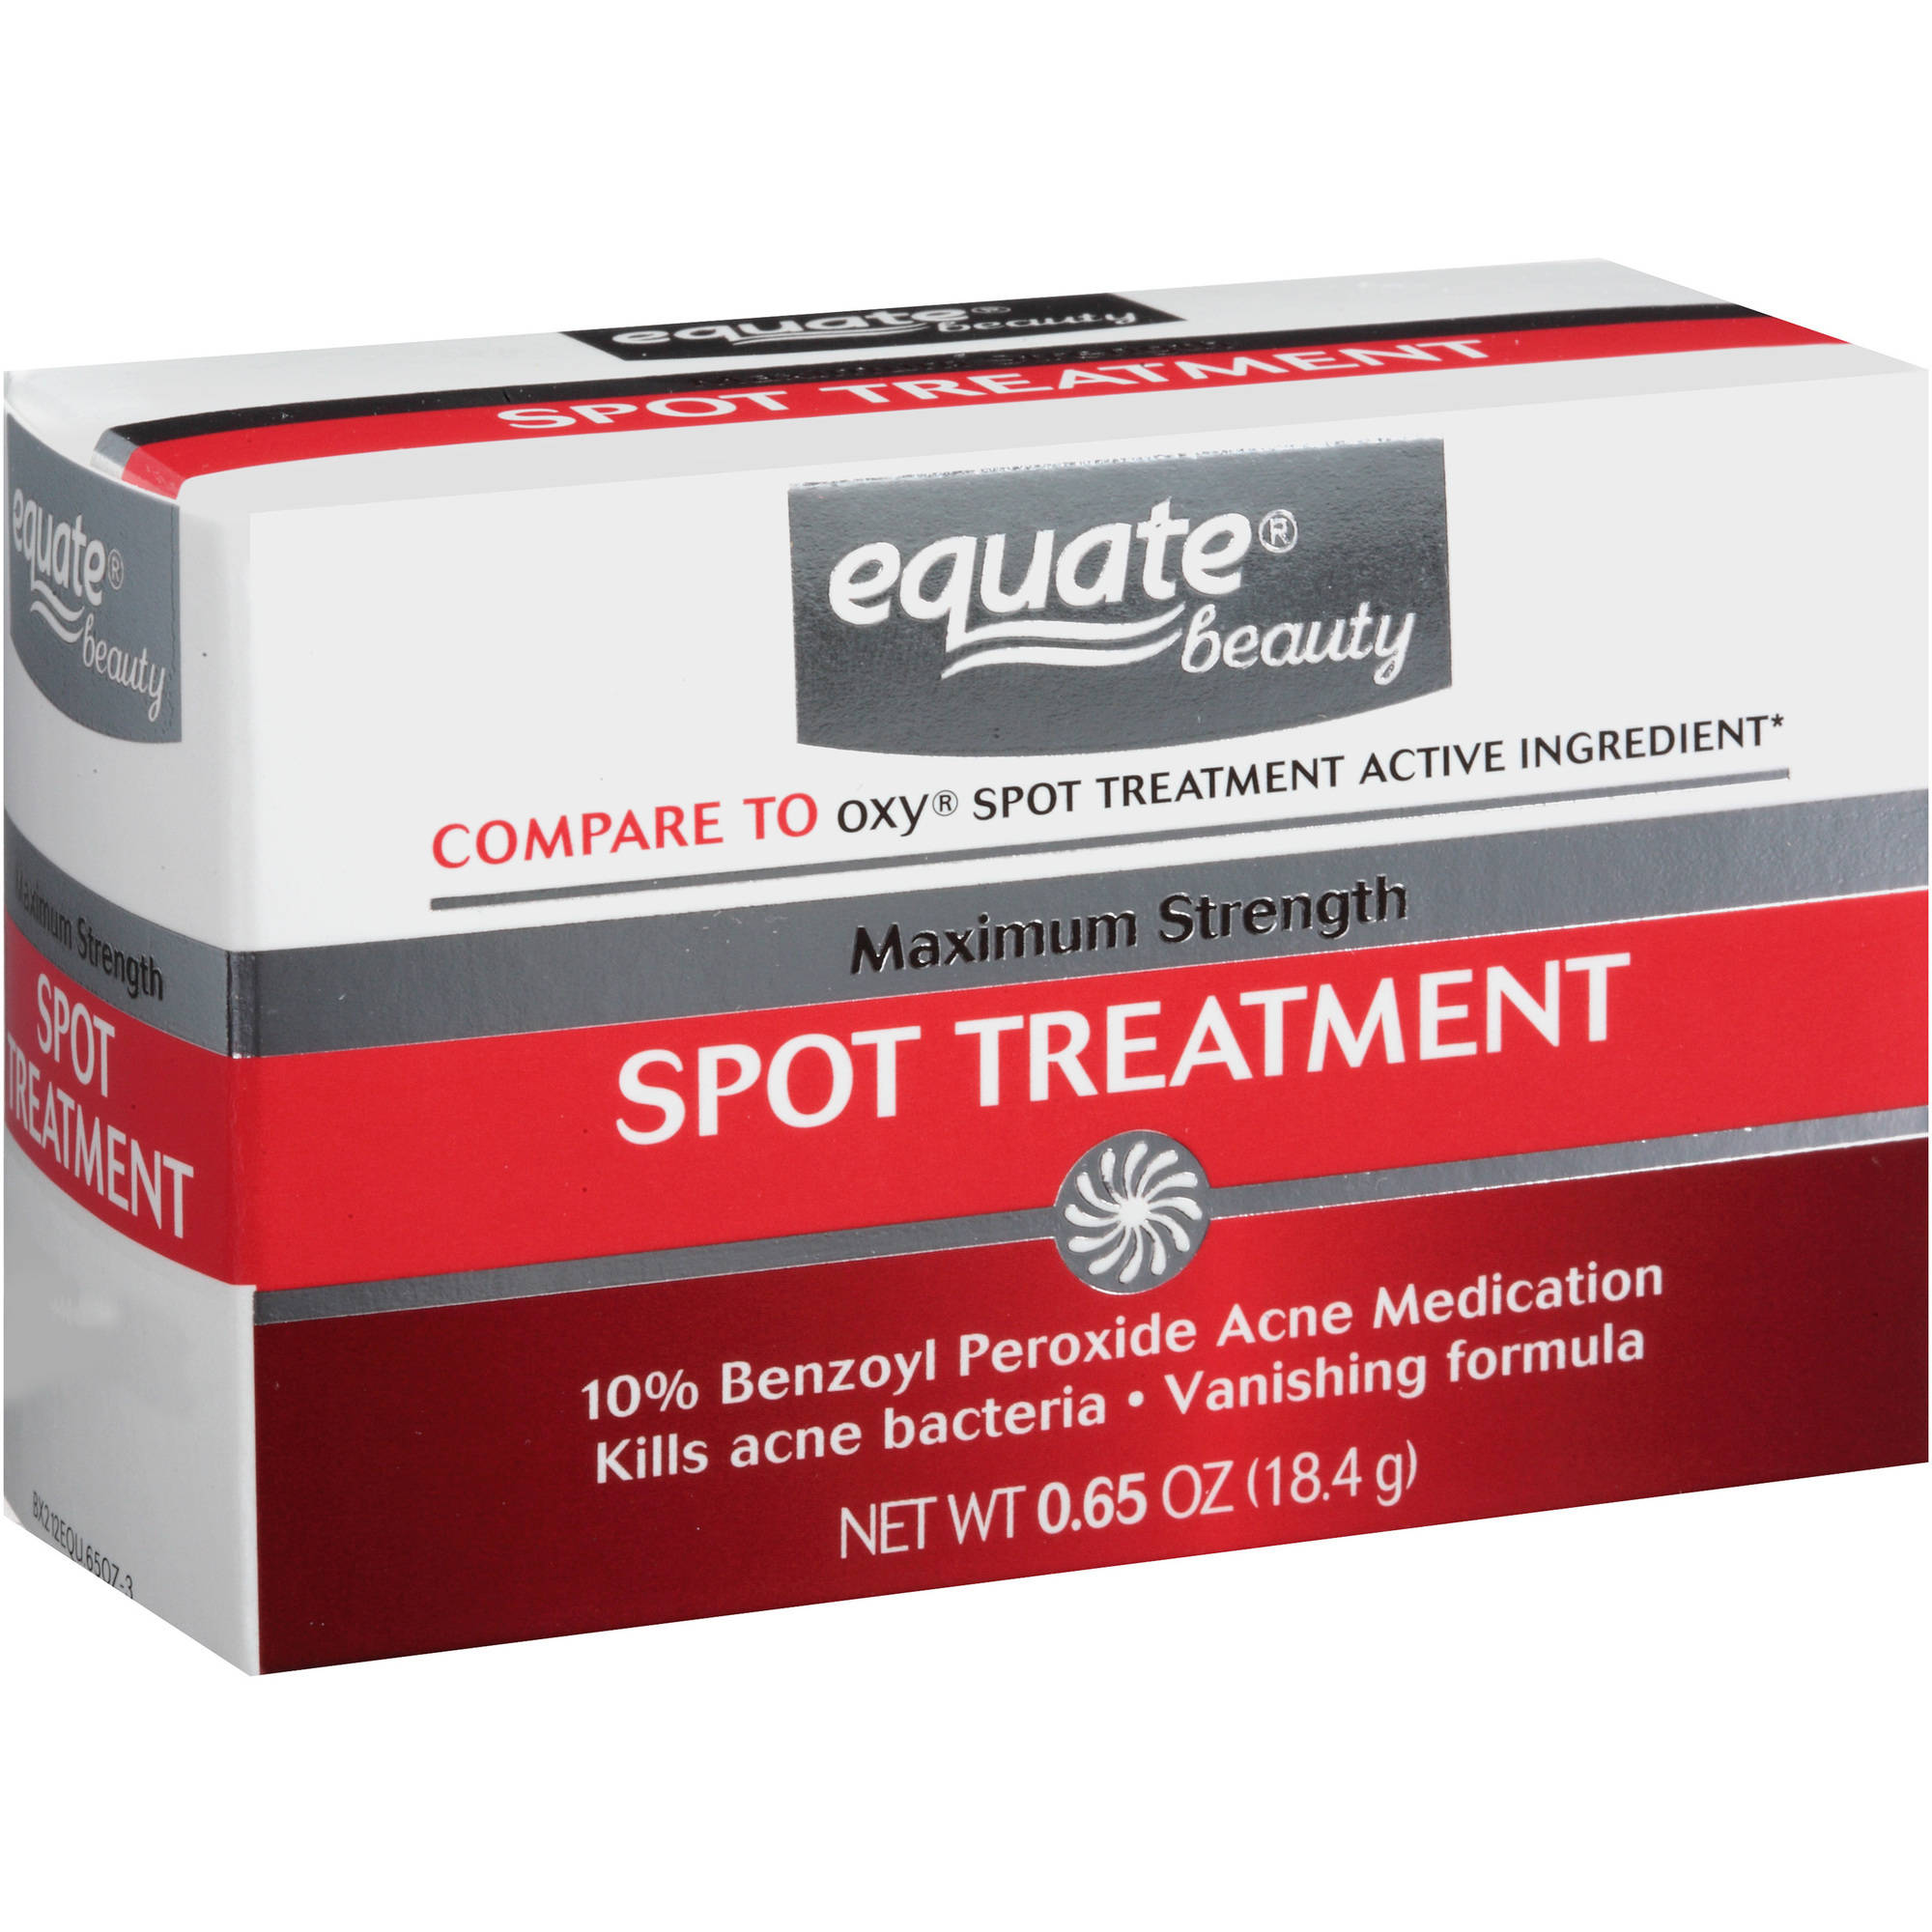 Equate Beauty Maximum Strength Spot Treatment, 0.65 oz